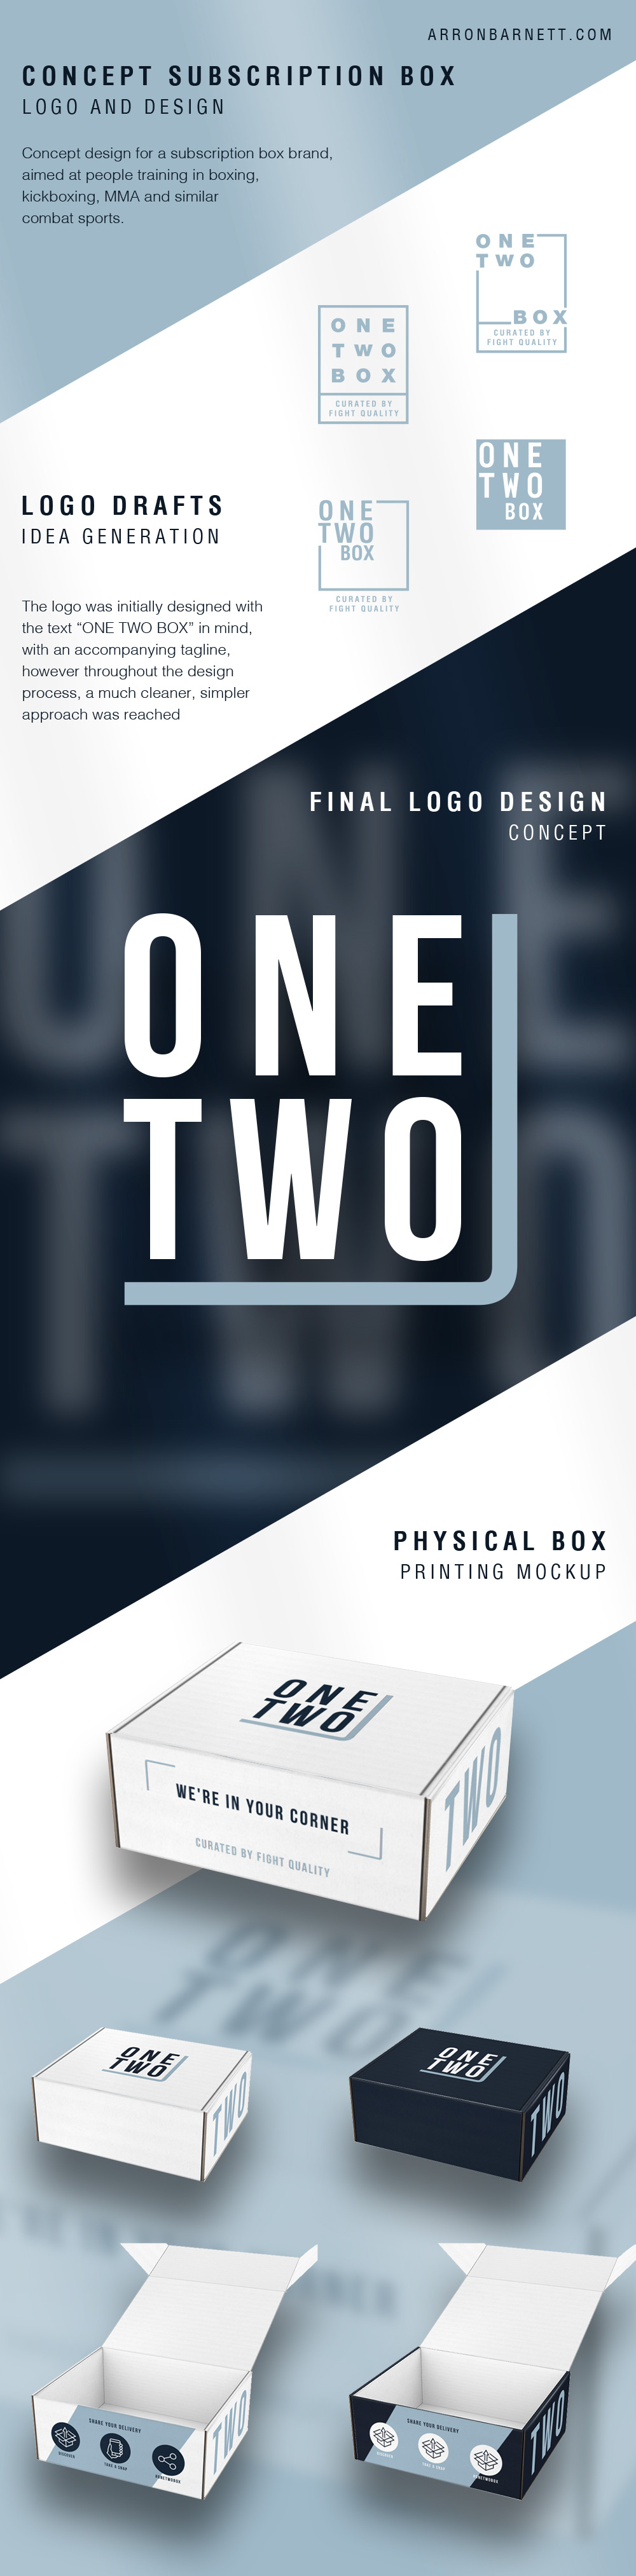 OneTwo Subscription Box logo and design